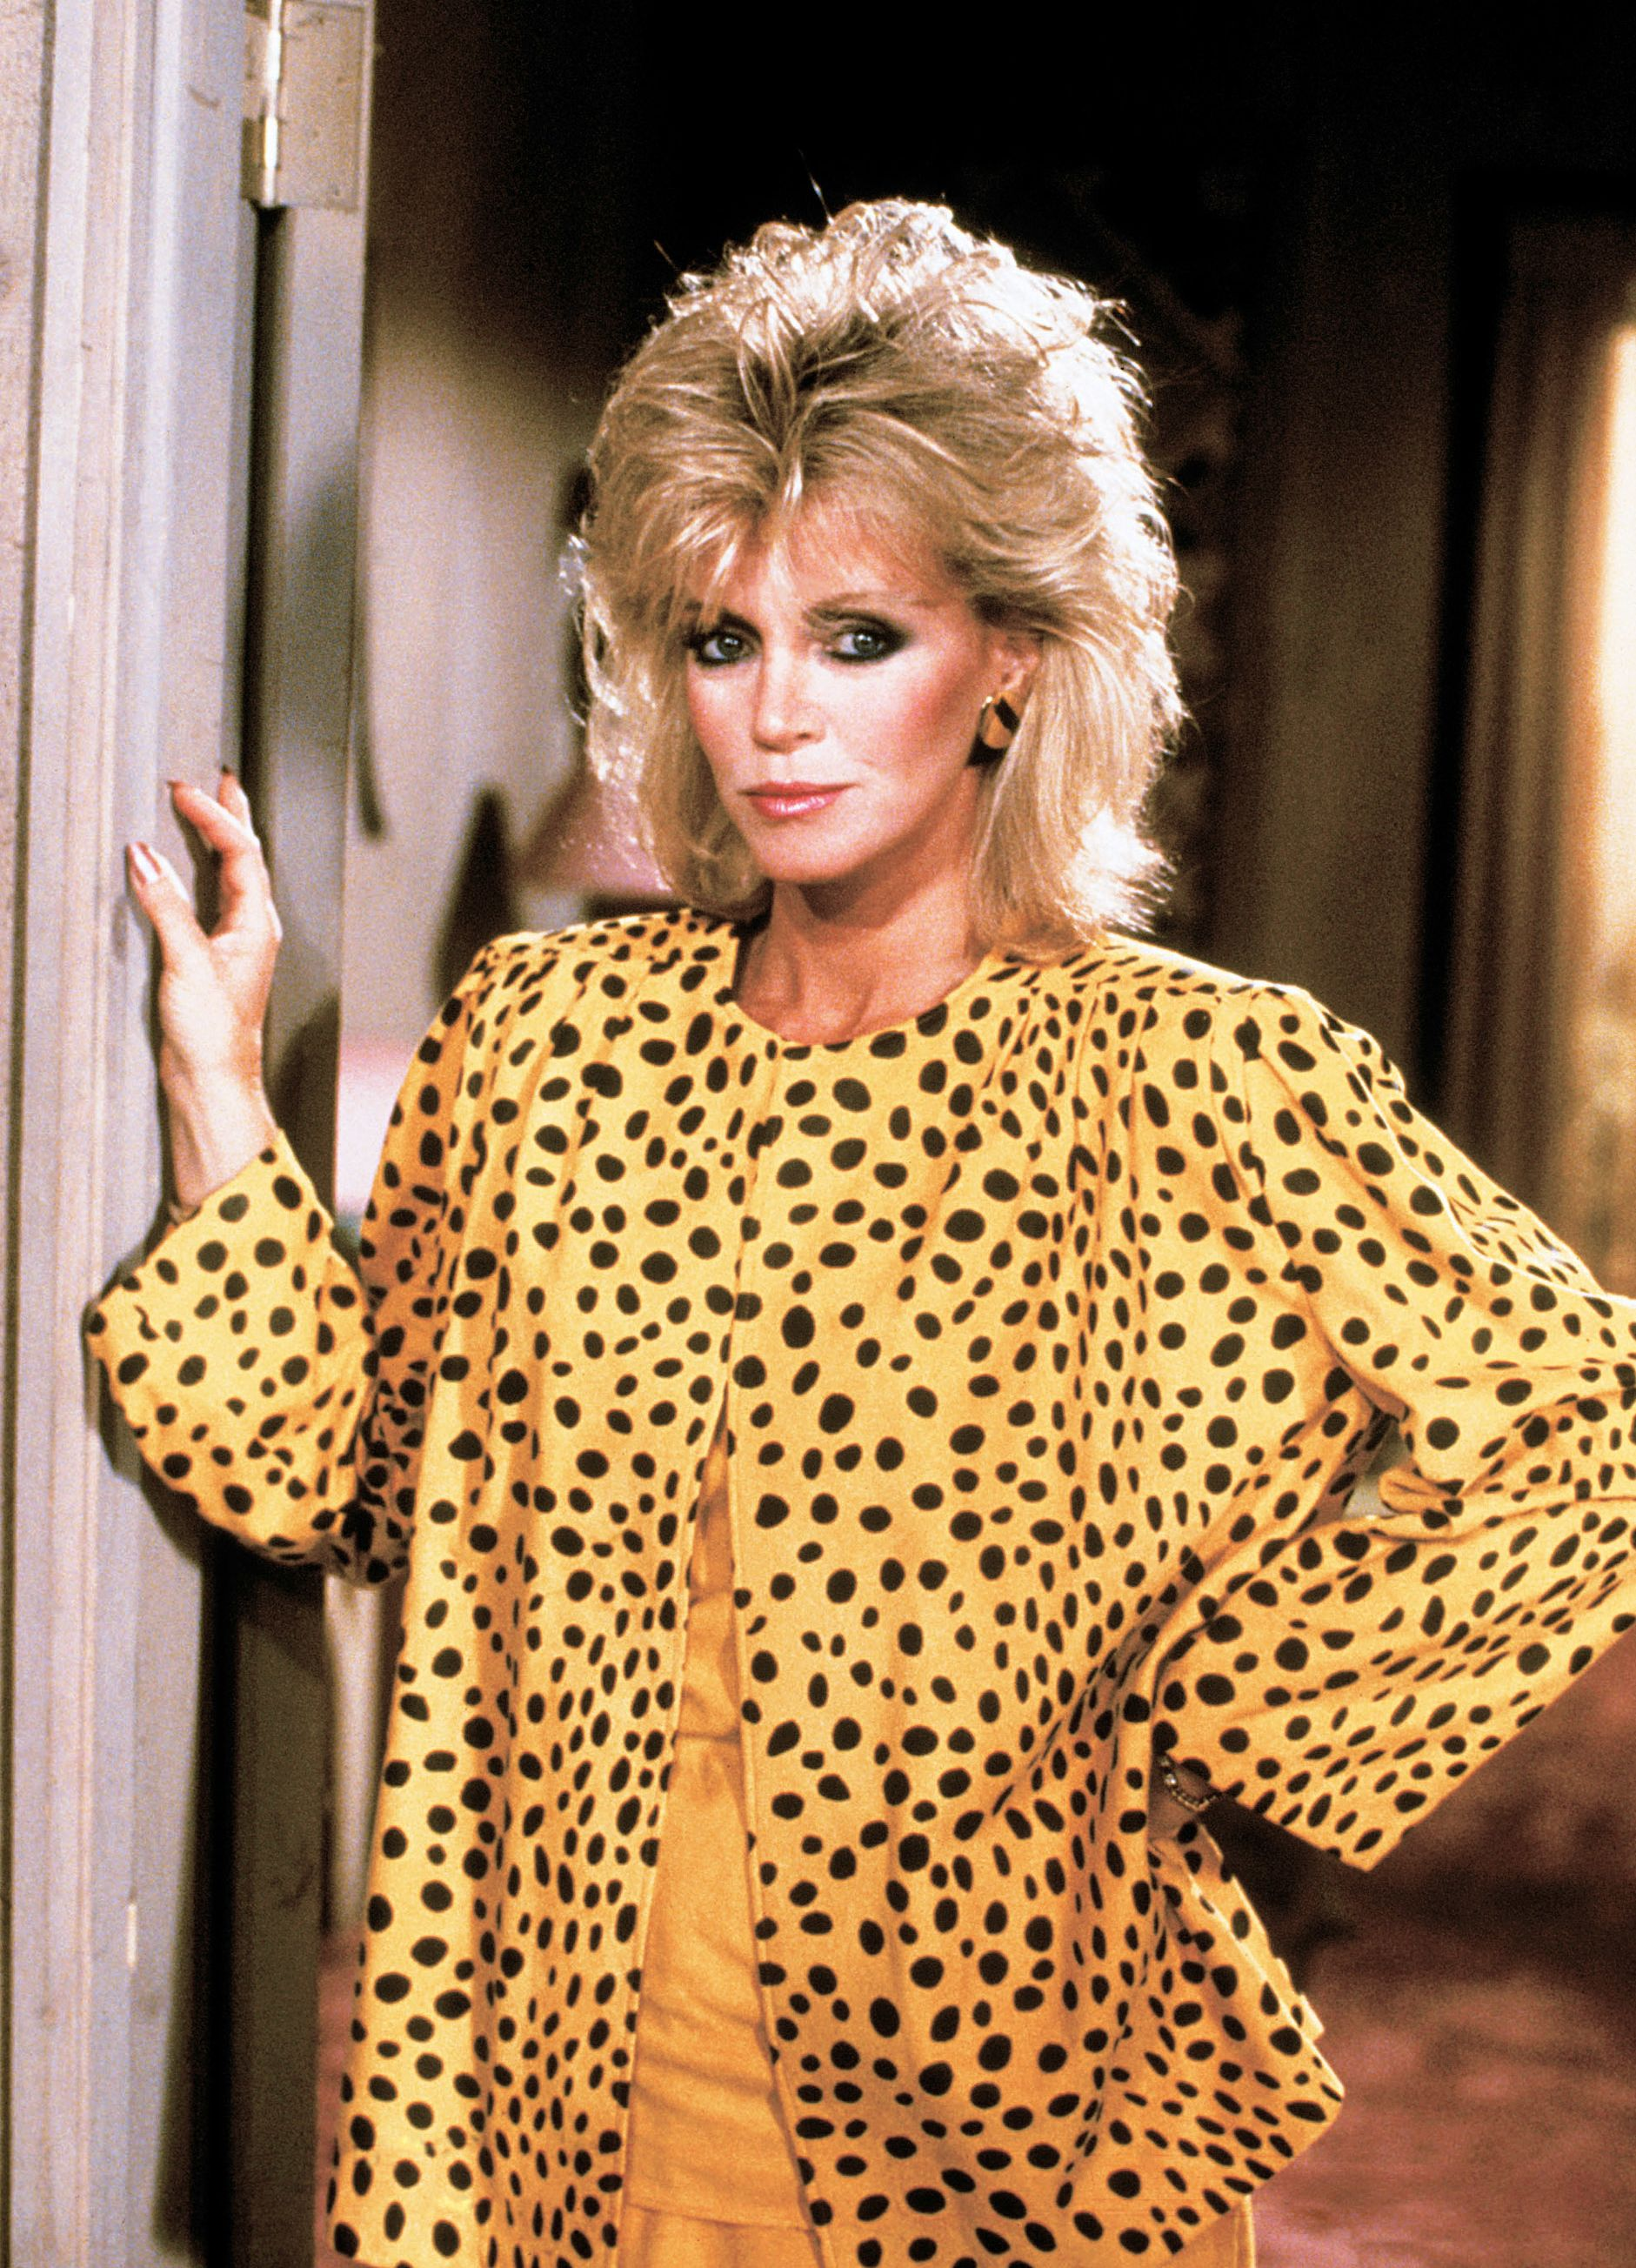 Donna Mills as Abby Ewing on the show Knots Landing wears vibrant yellow with black polka dot top with significant shoulder pads.